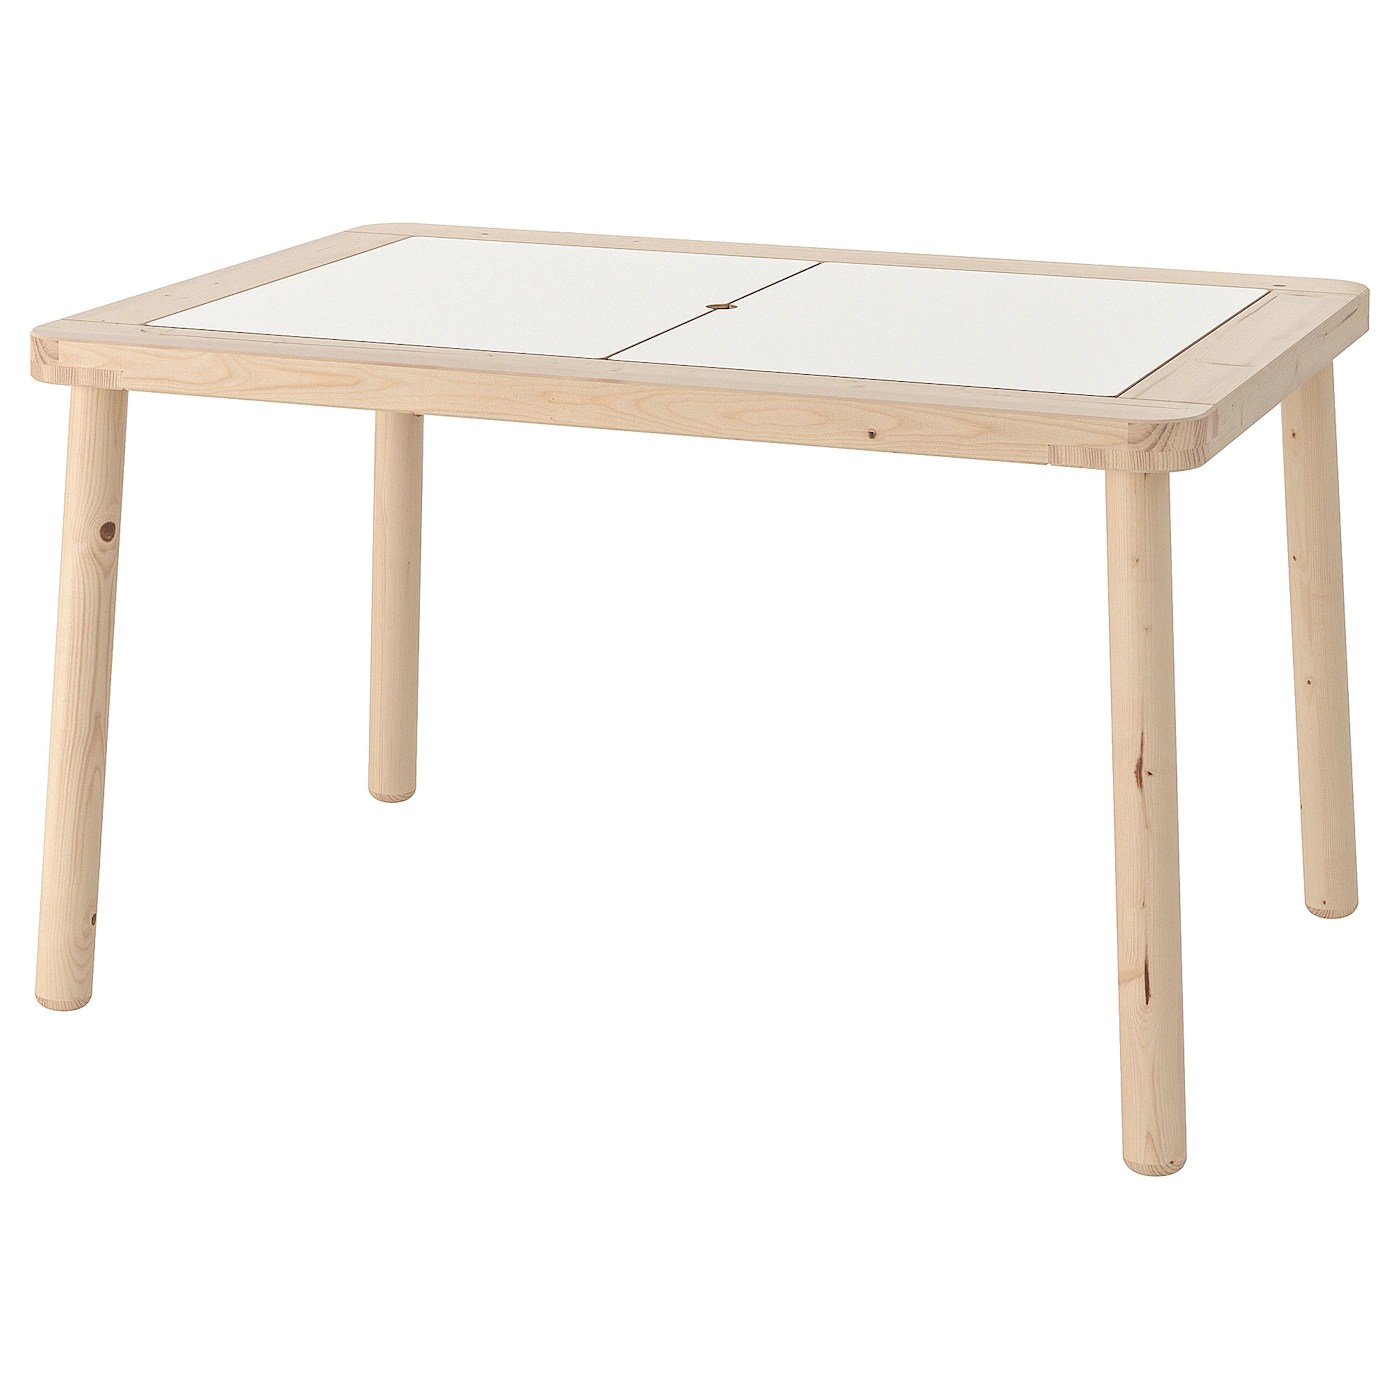 Flisat Children S Table 83x58 Cm Ikea